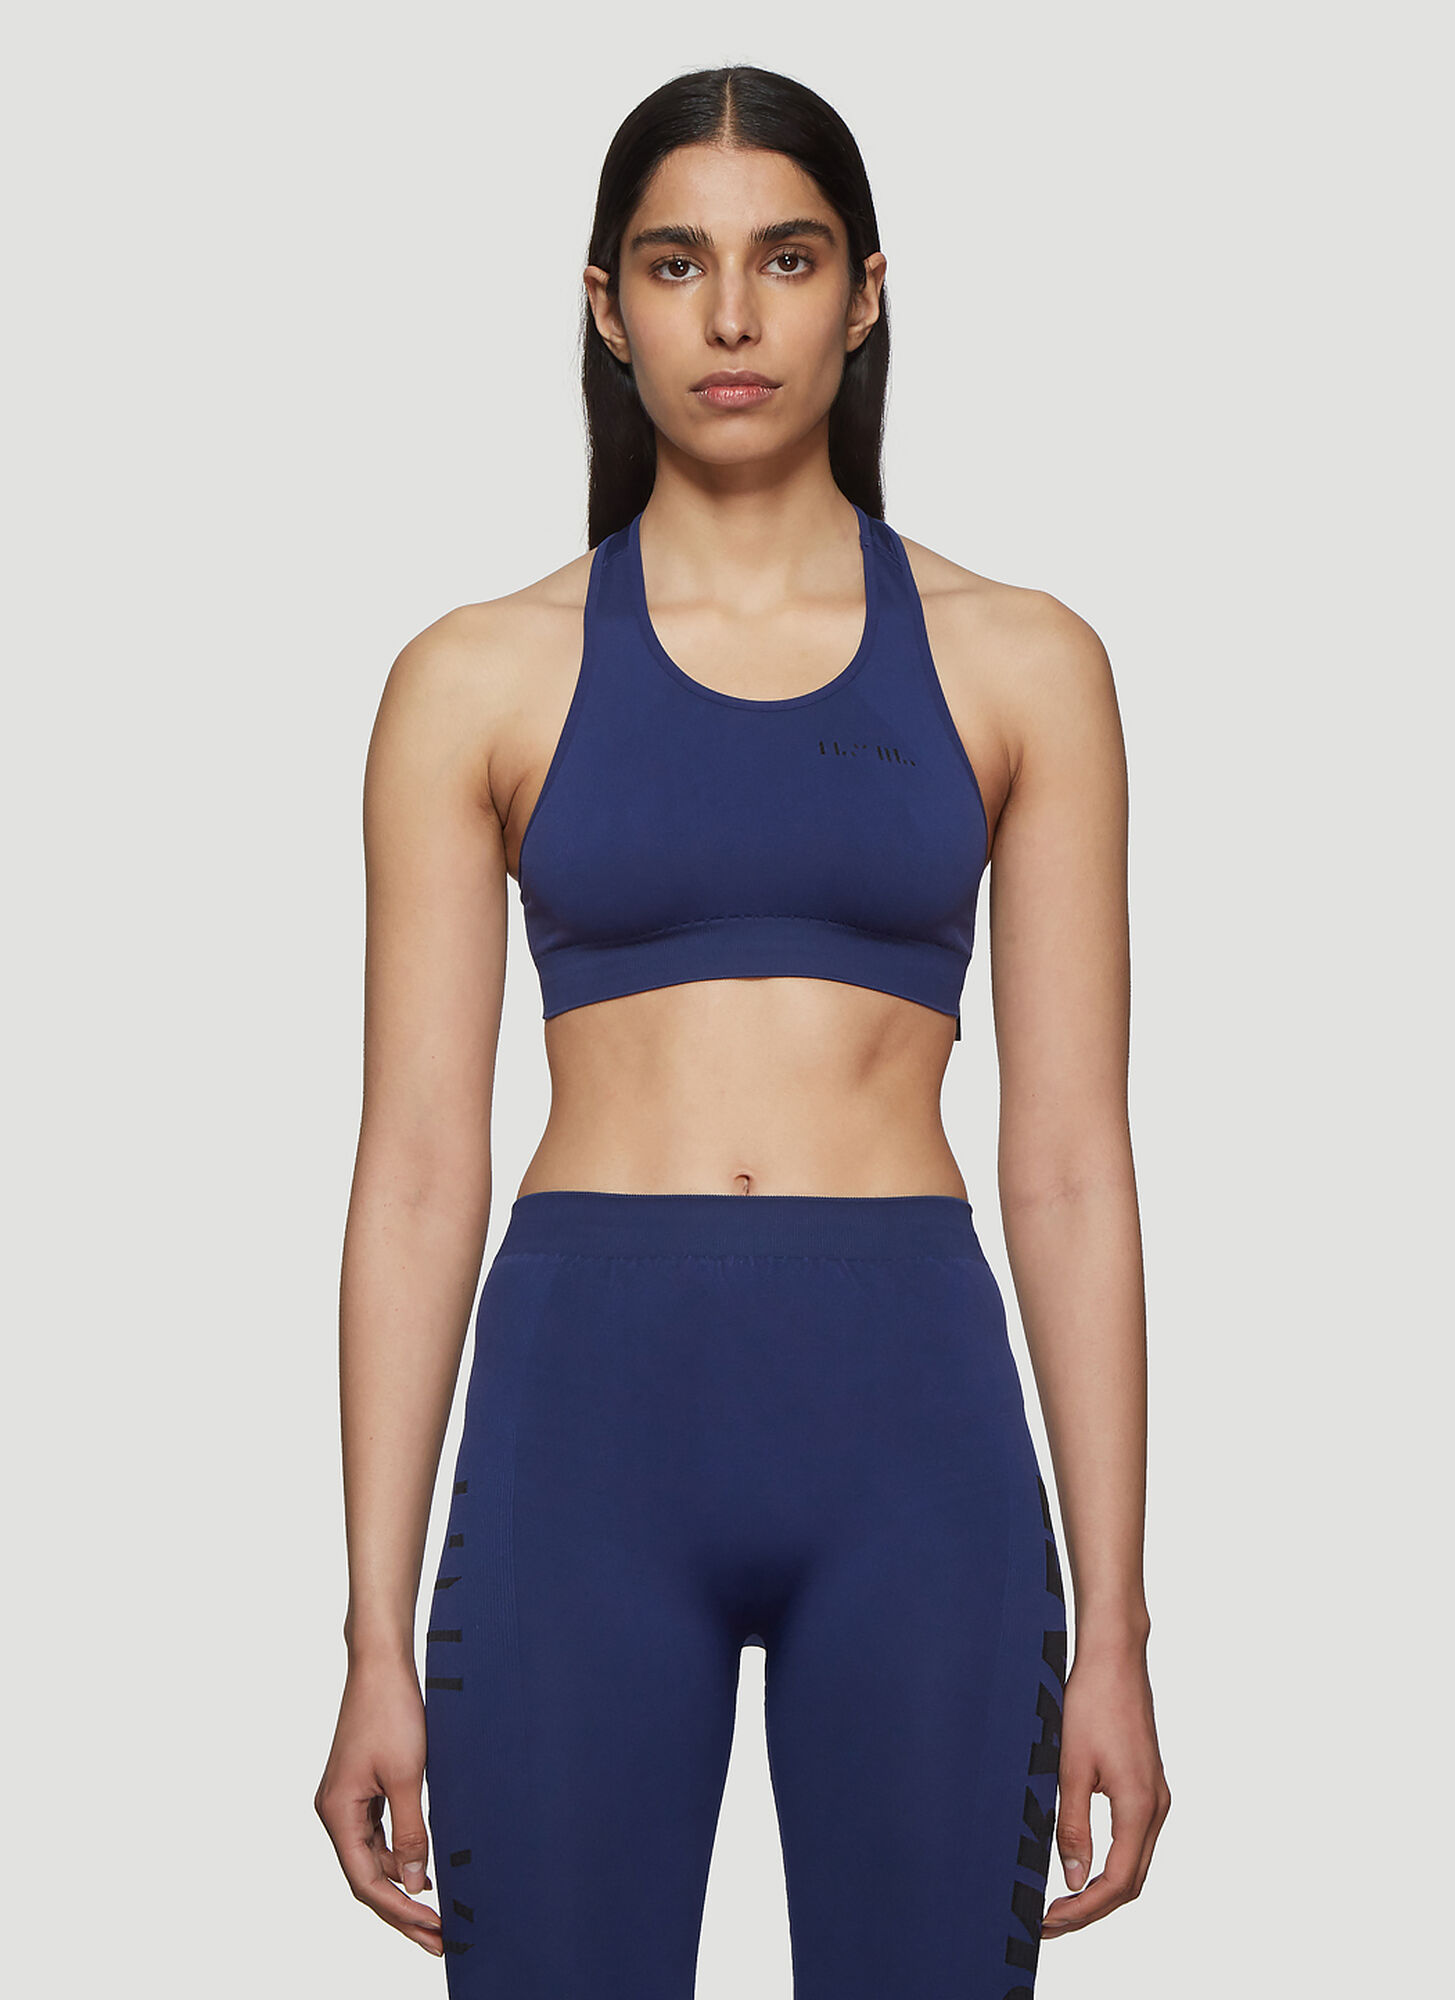 Photo of Unravel Project Tech Seamless Bra Top in Blue - Unravel Project Underwear